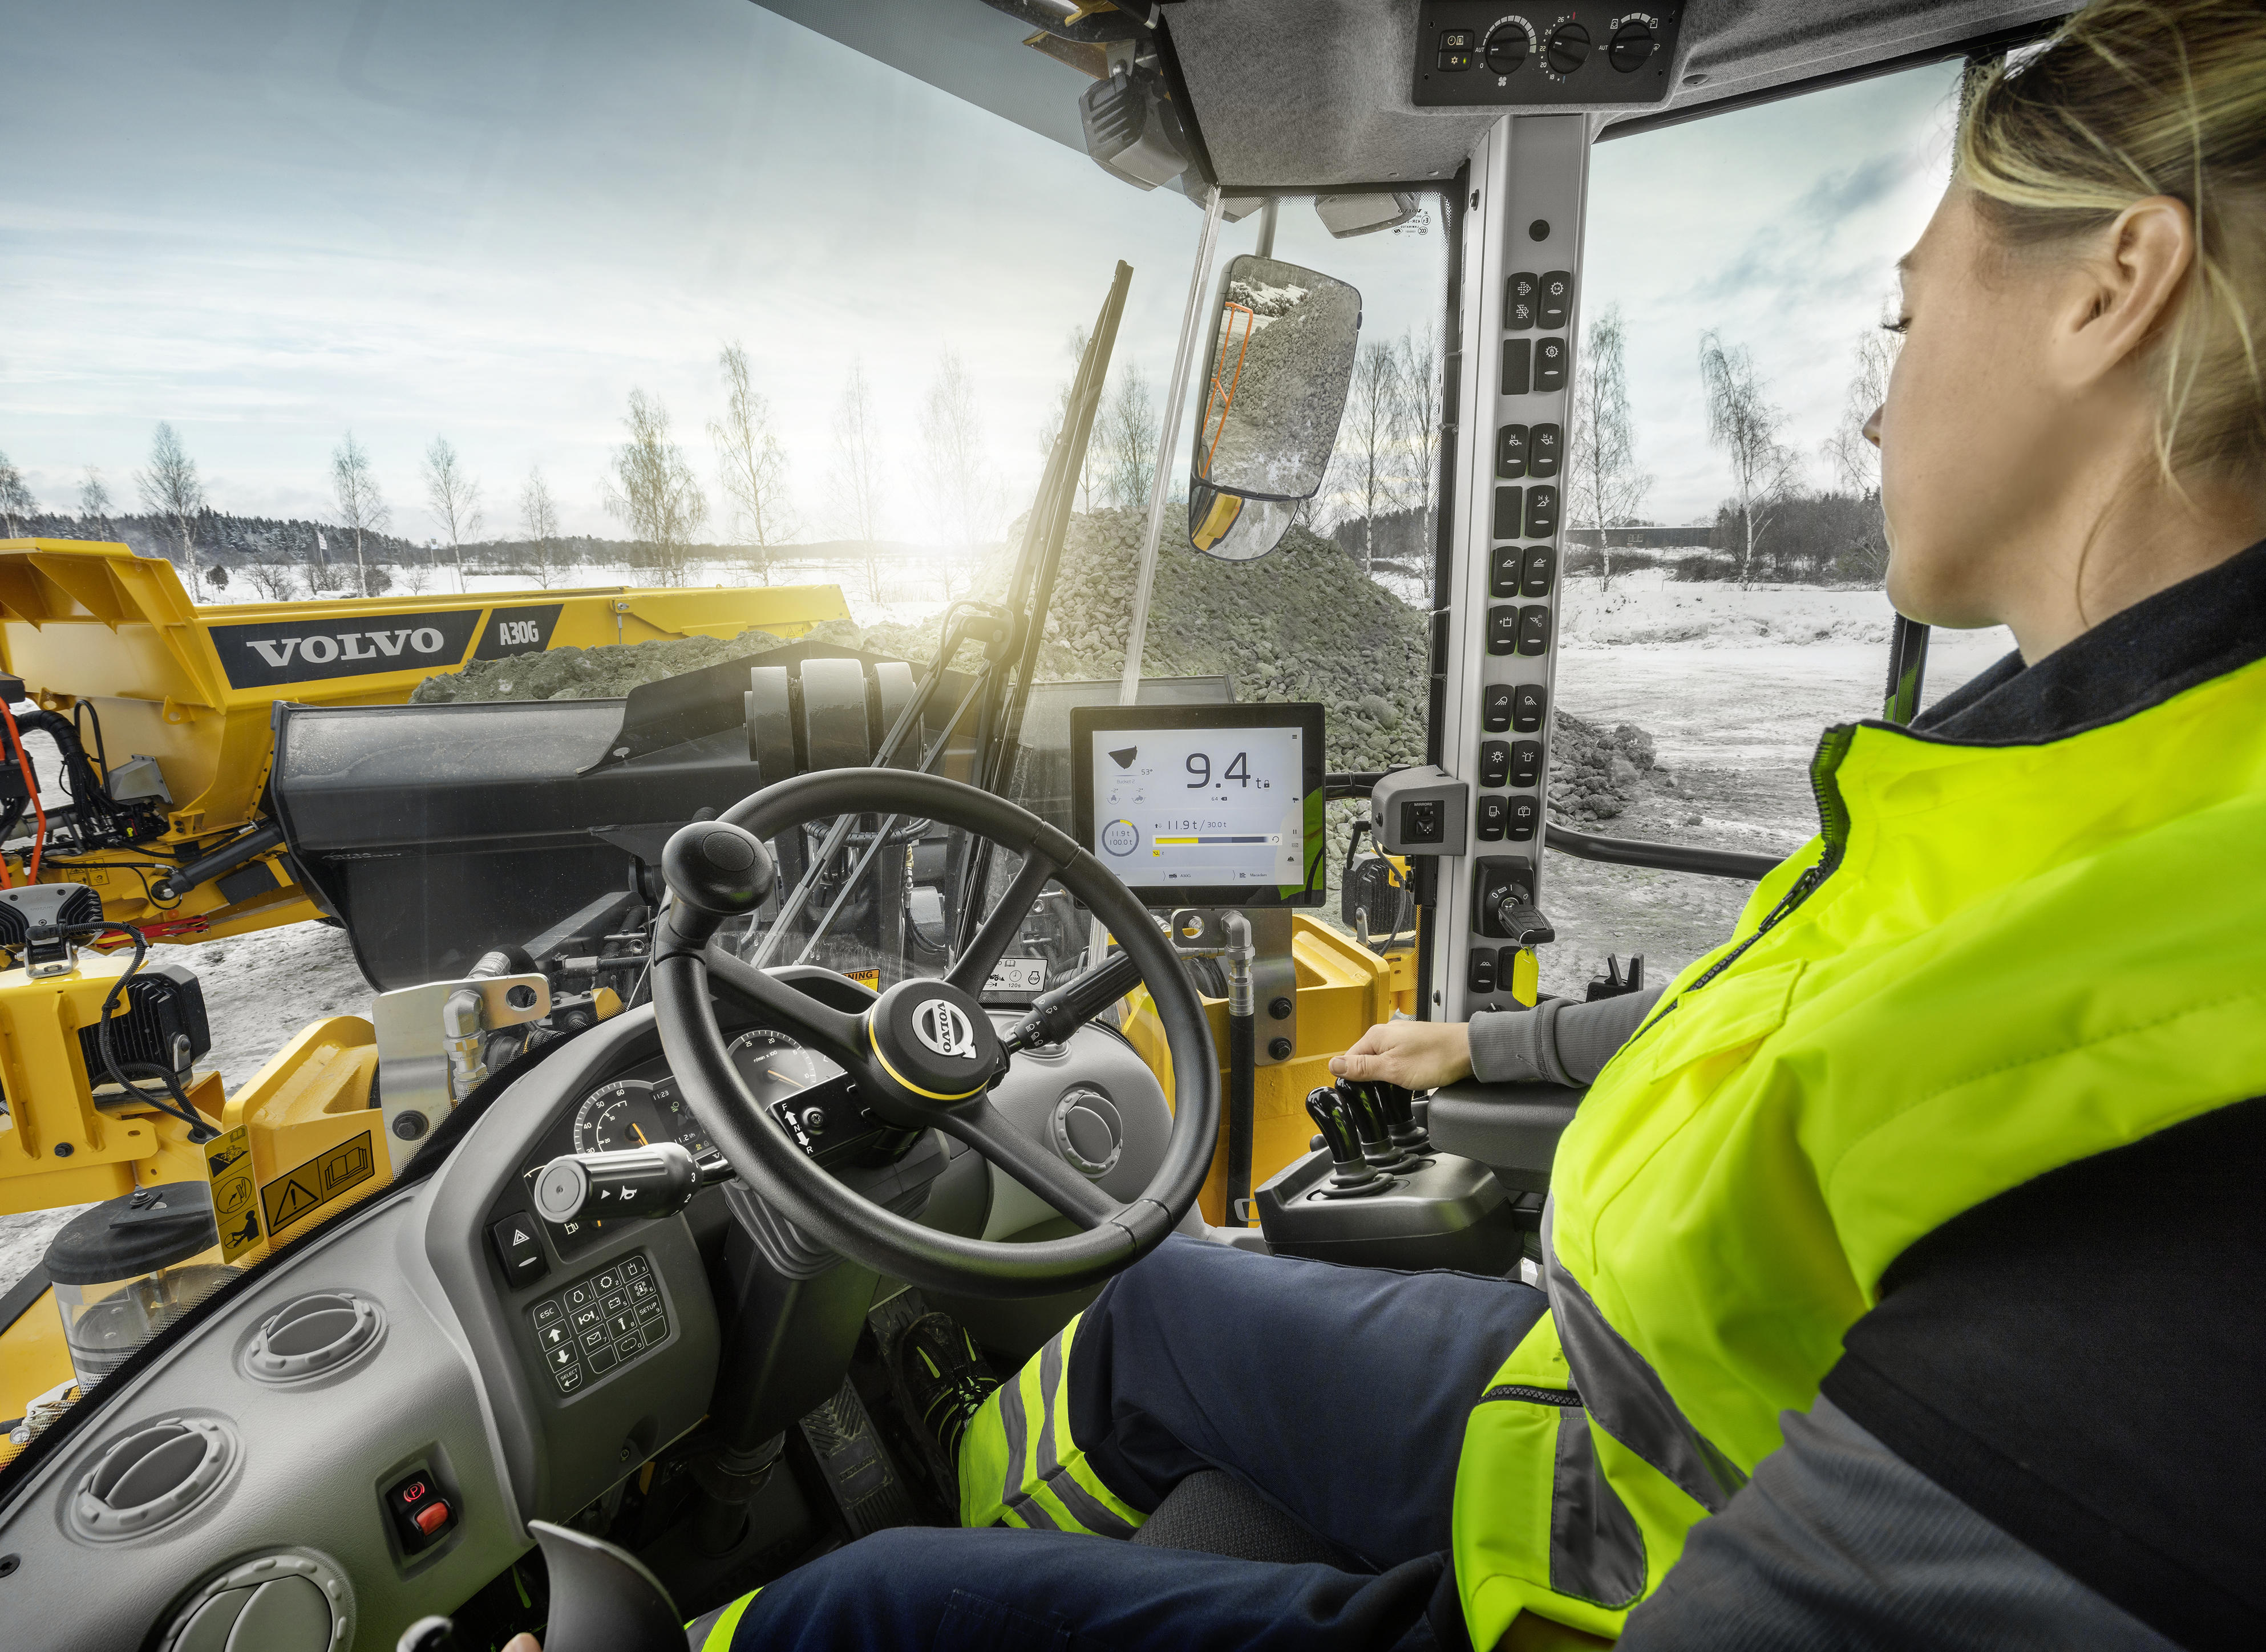 volvo-ce_news-story_the-furious-five-components-that-help-machine-control-systems-click_03